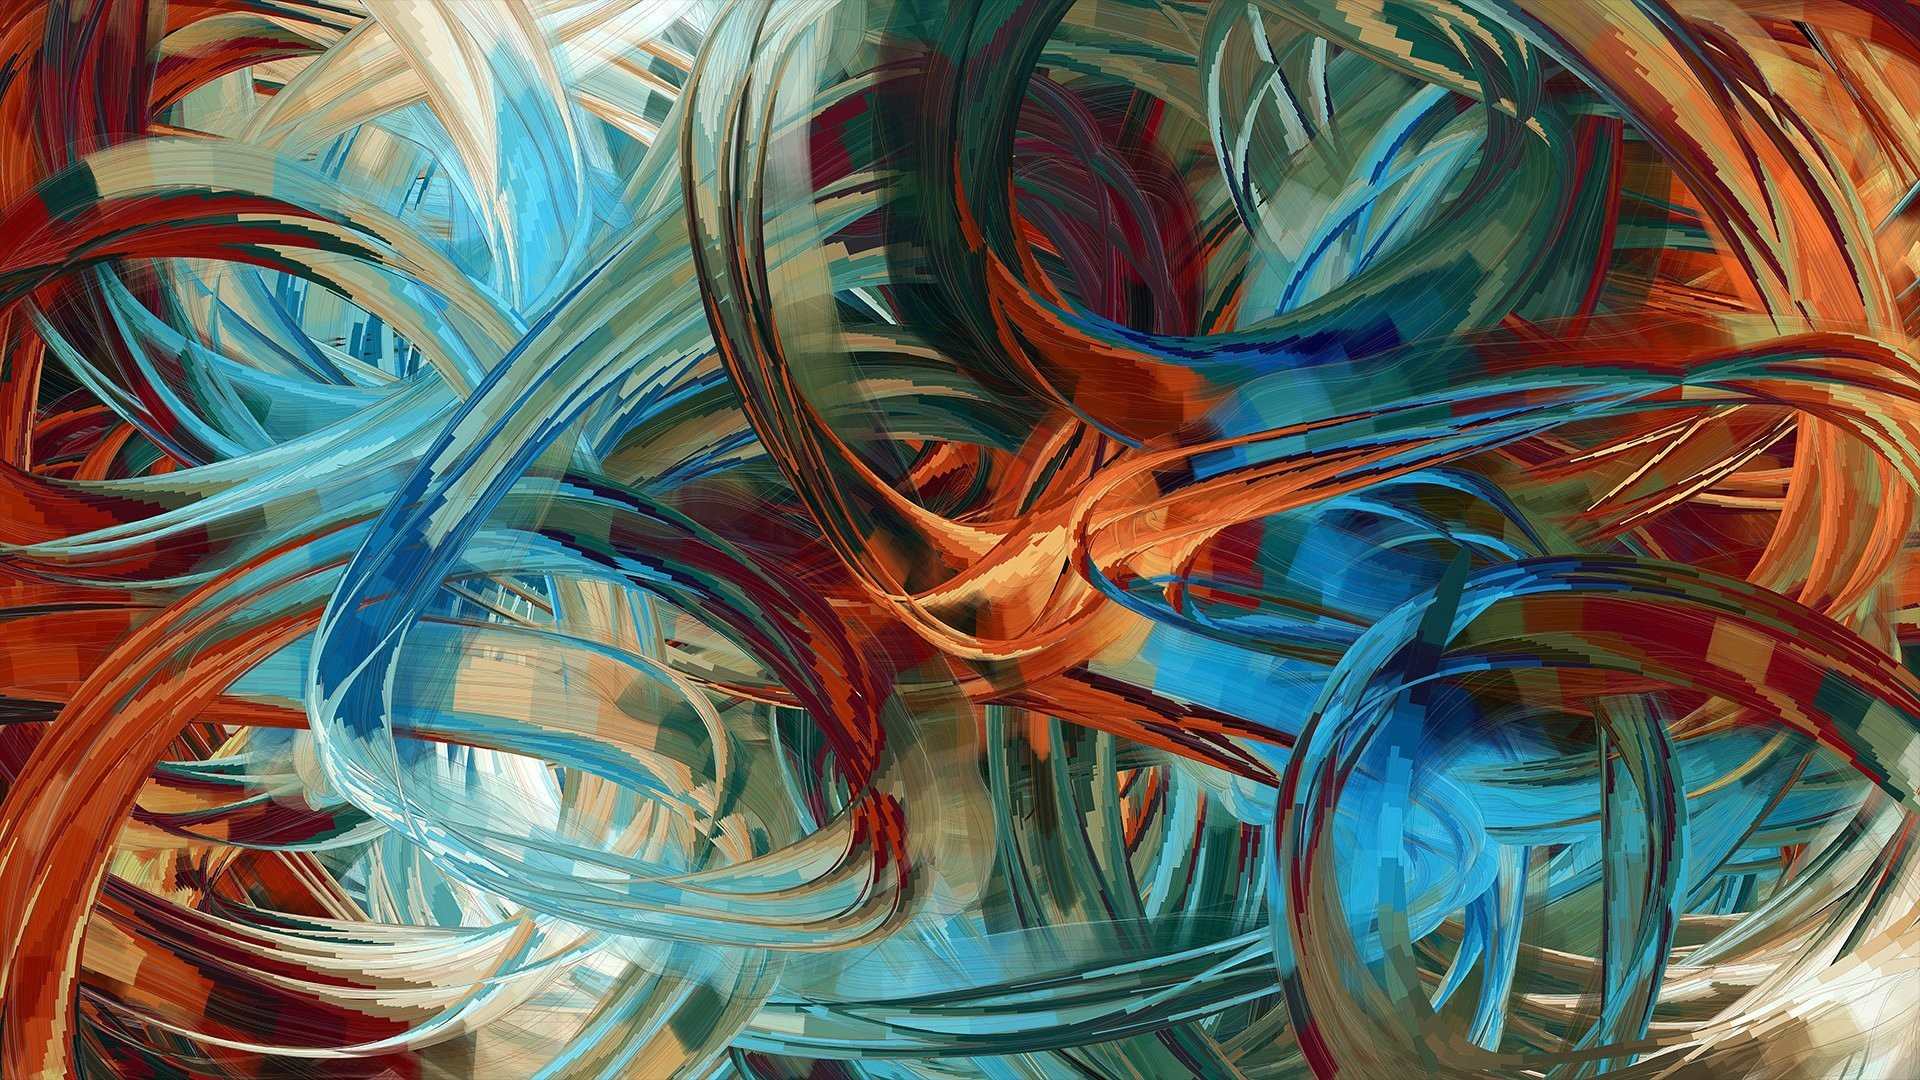 Famous Painting Wallpaper Image Picture Amazing Wallpaperz - Generative Art - HD Wallpaper